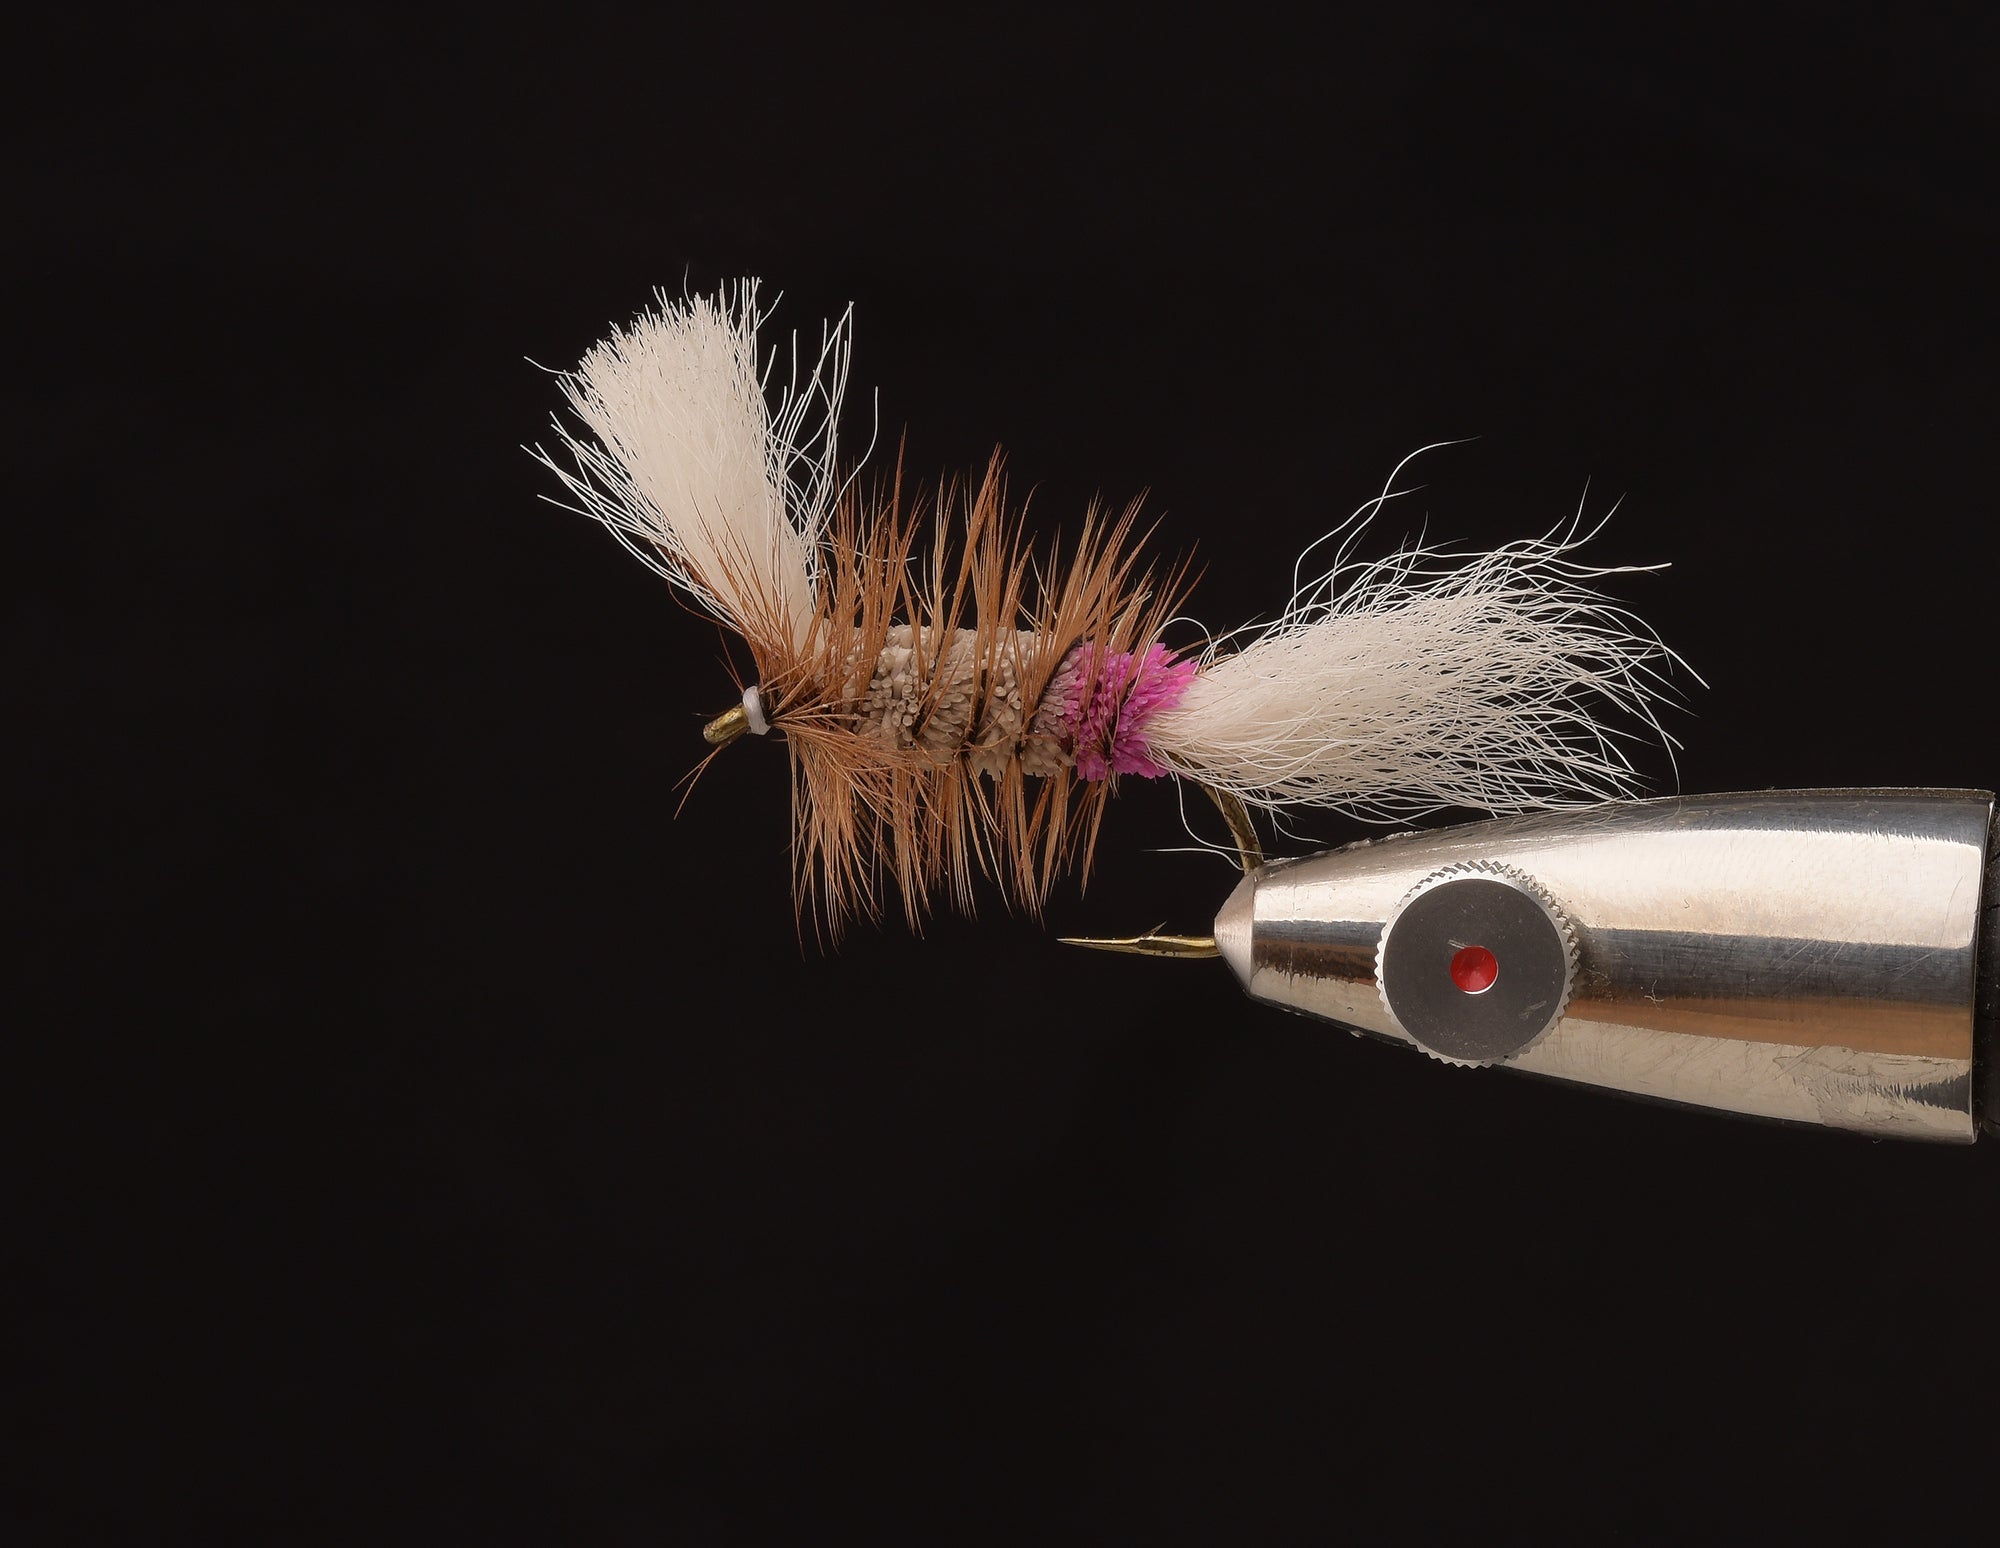 Dry flies for salmon